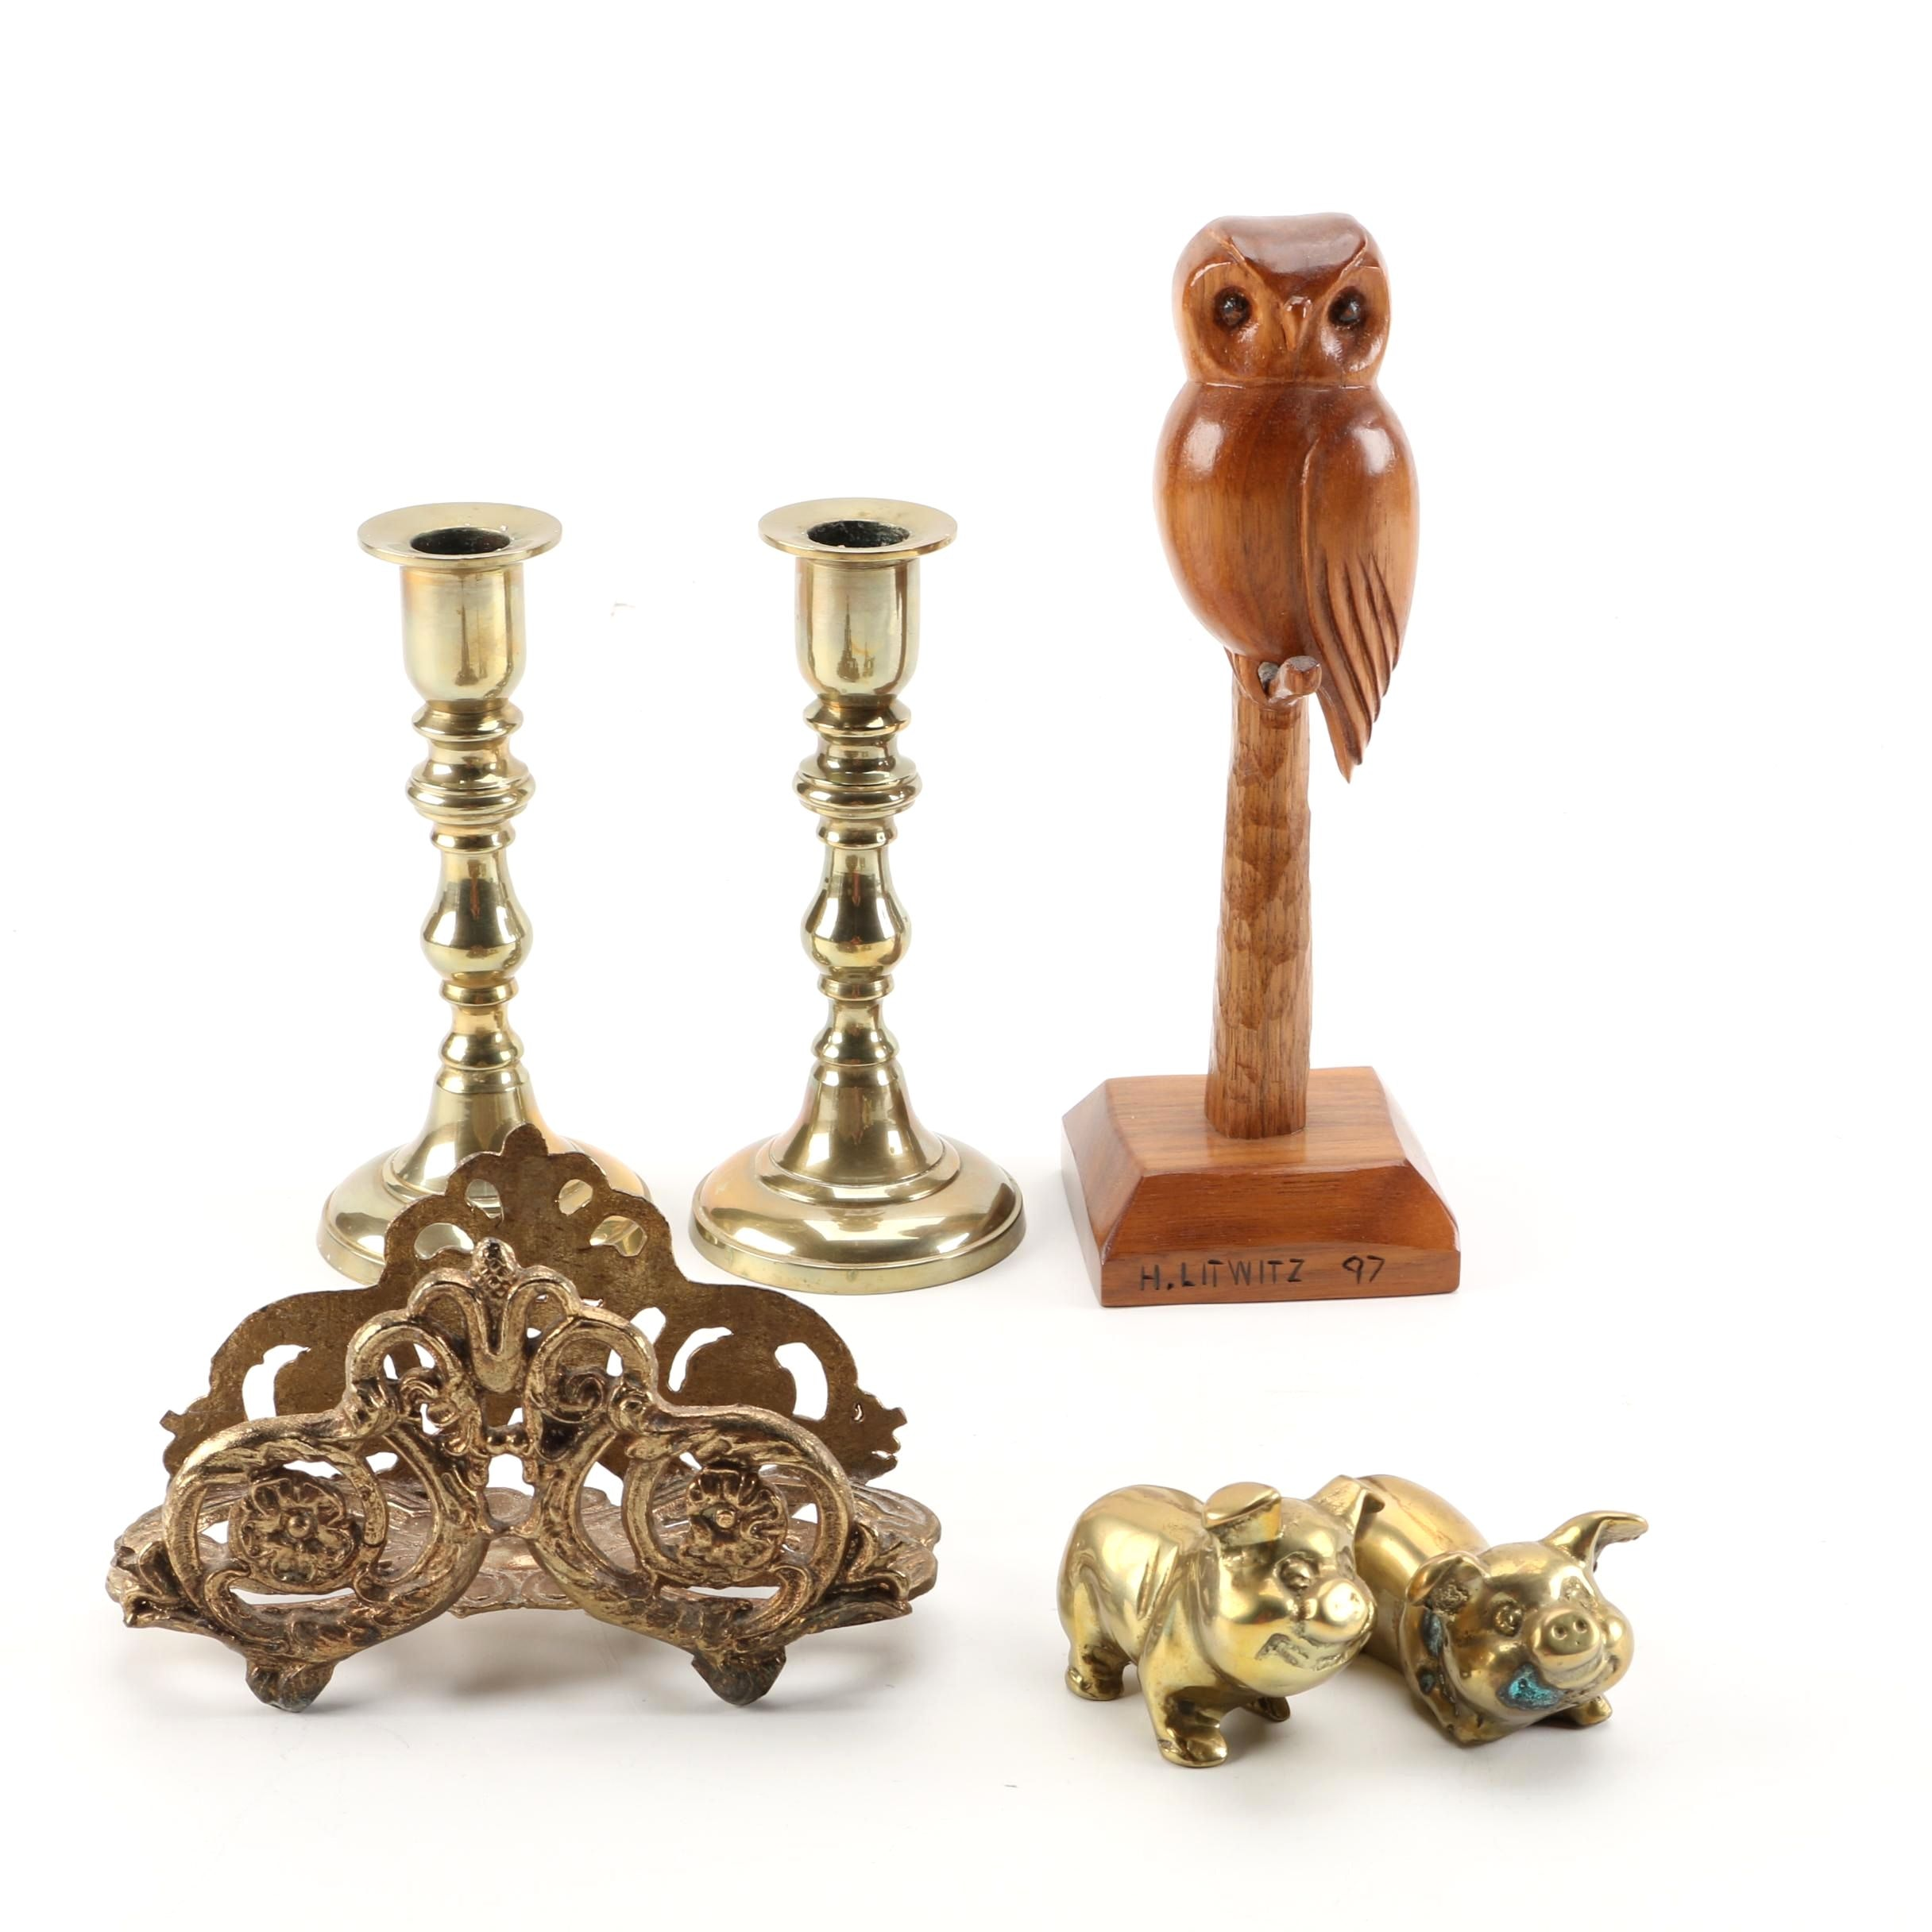 Brass Pig Figurines, Letter Holder, Candleholders, and Carved Wooden Owl